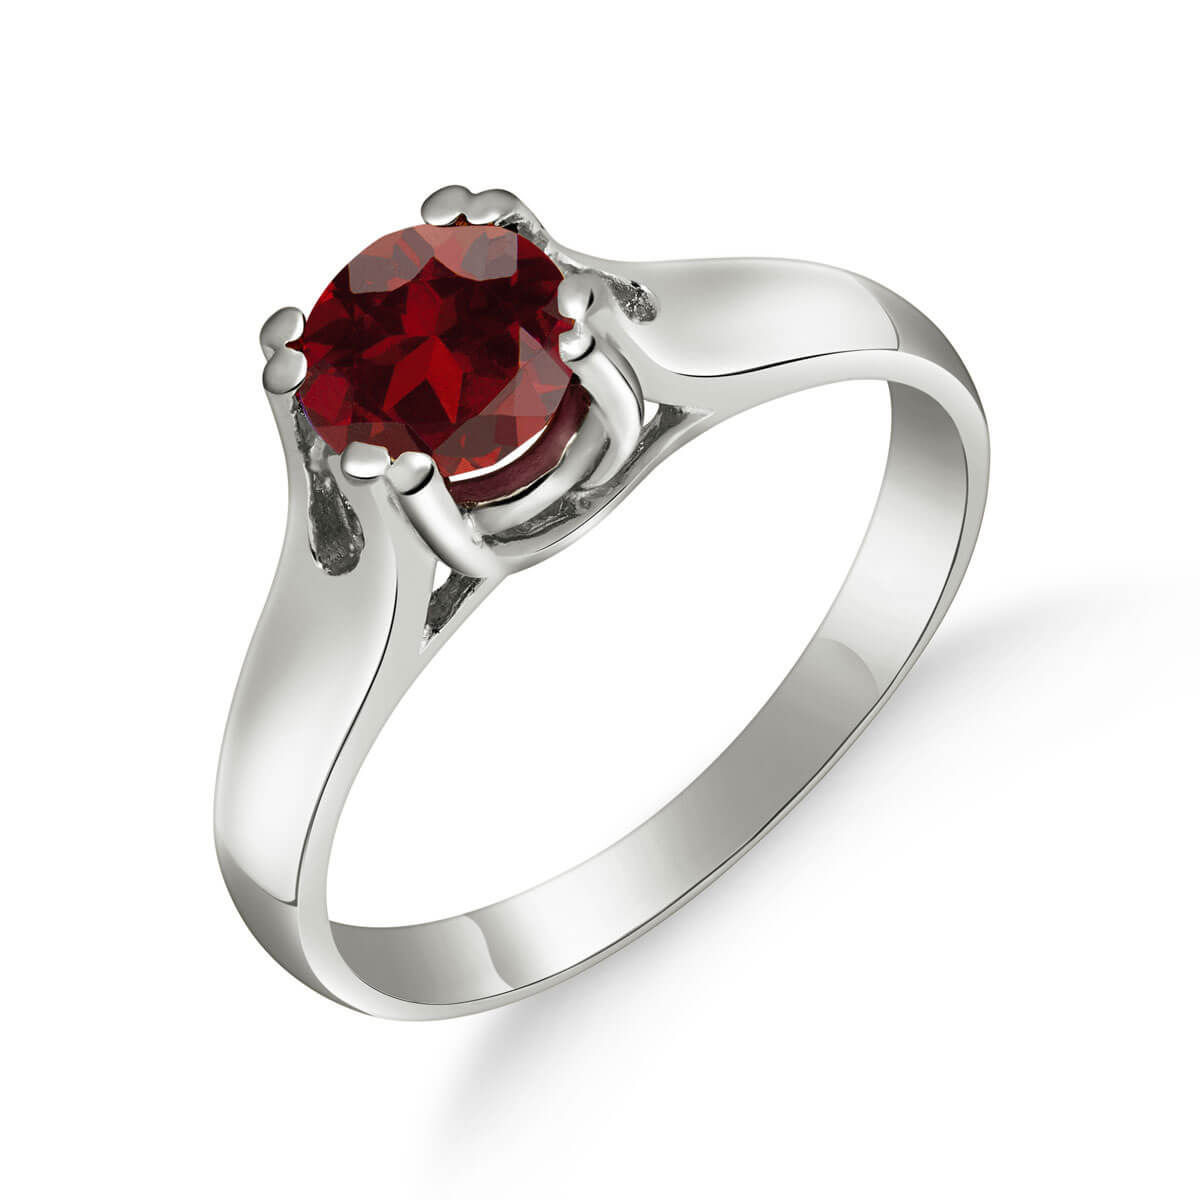 Garnet Solitaire Ring 1.1 ct in 18ct White Gold